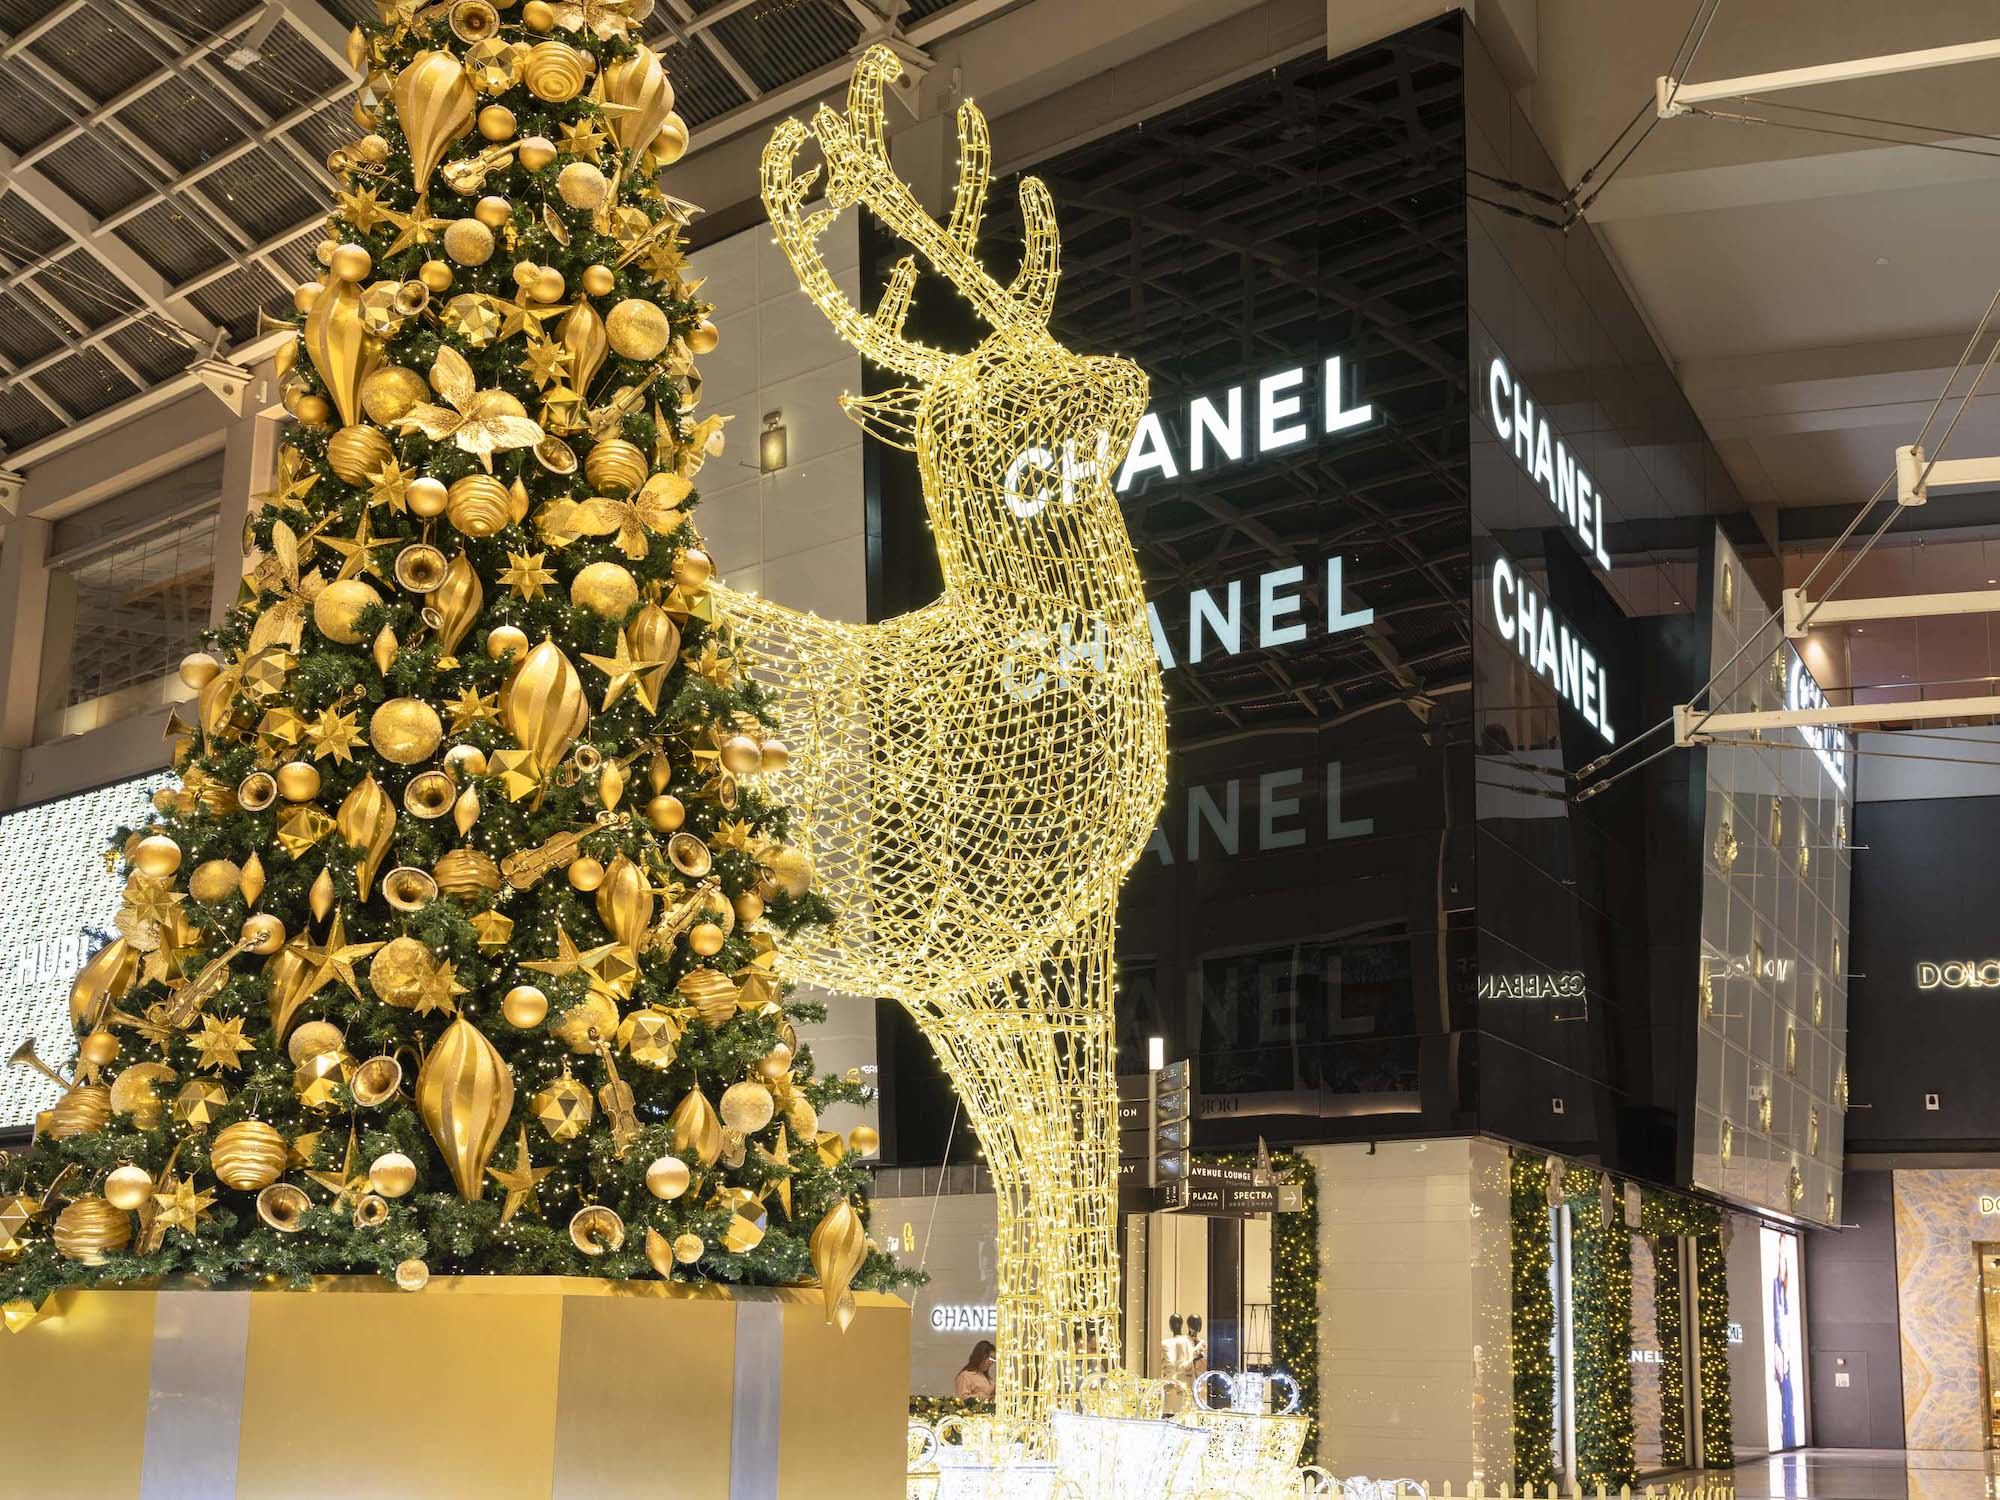 Marina Bay Sands Interior Photography by Jose Jeuland Christmas Tree and Reindeer side by side beside Chanel store